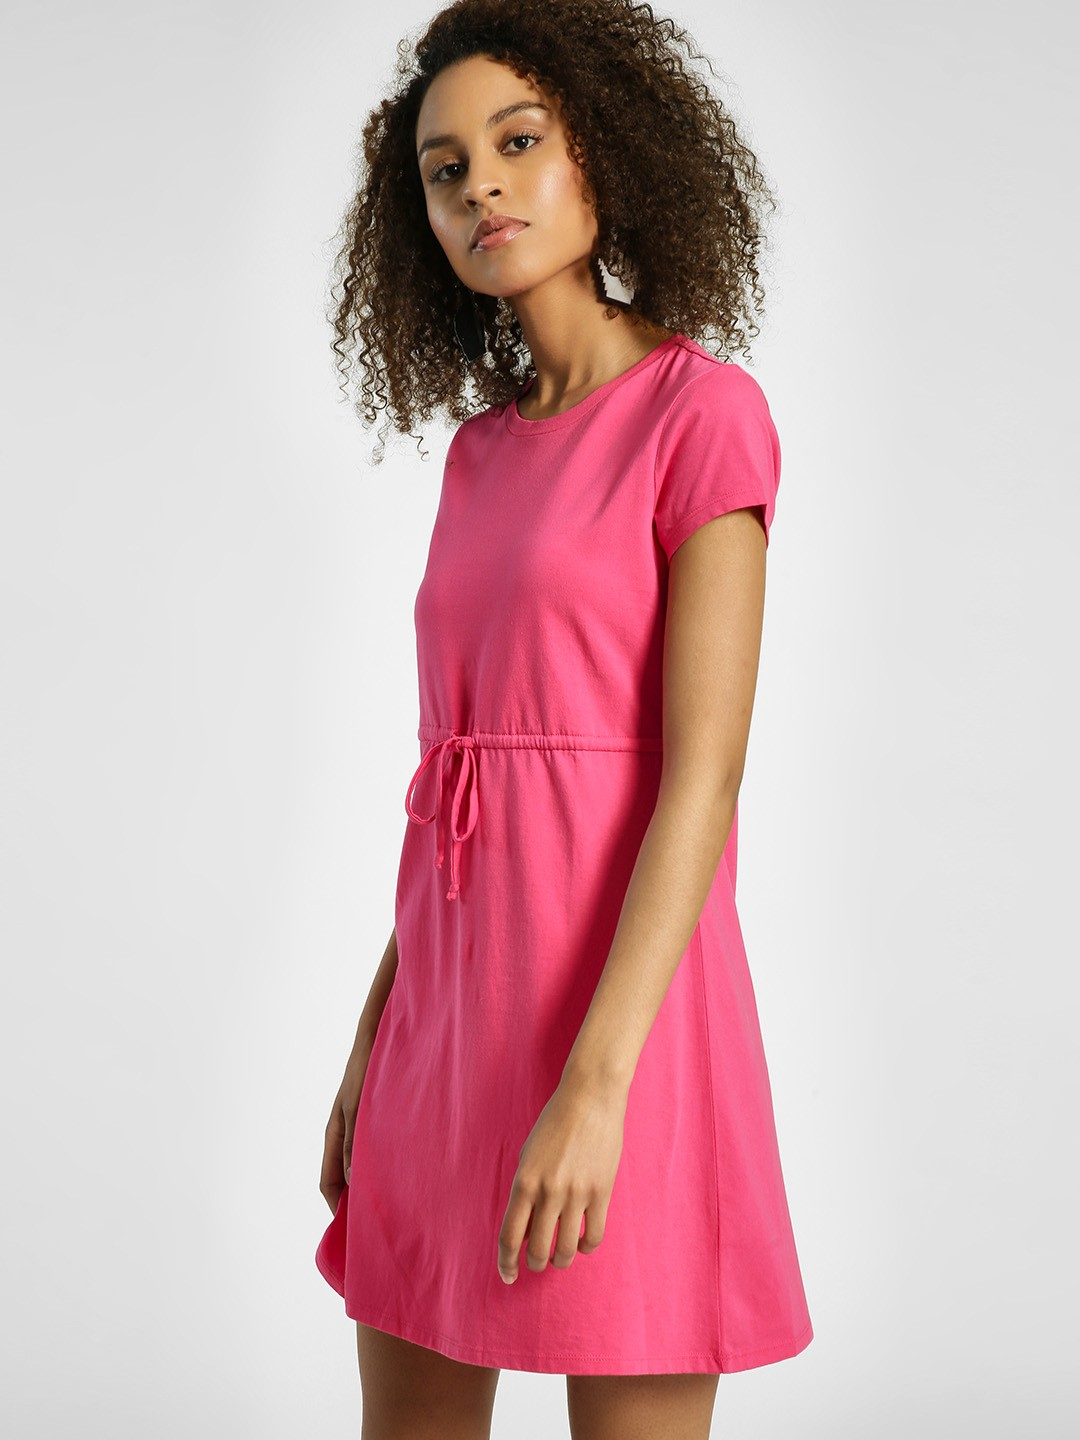 United Colors of Benetton Pink Drawstring Waist Shift Dress 1